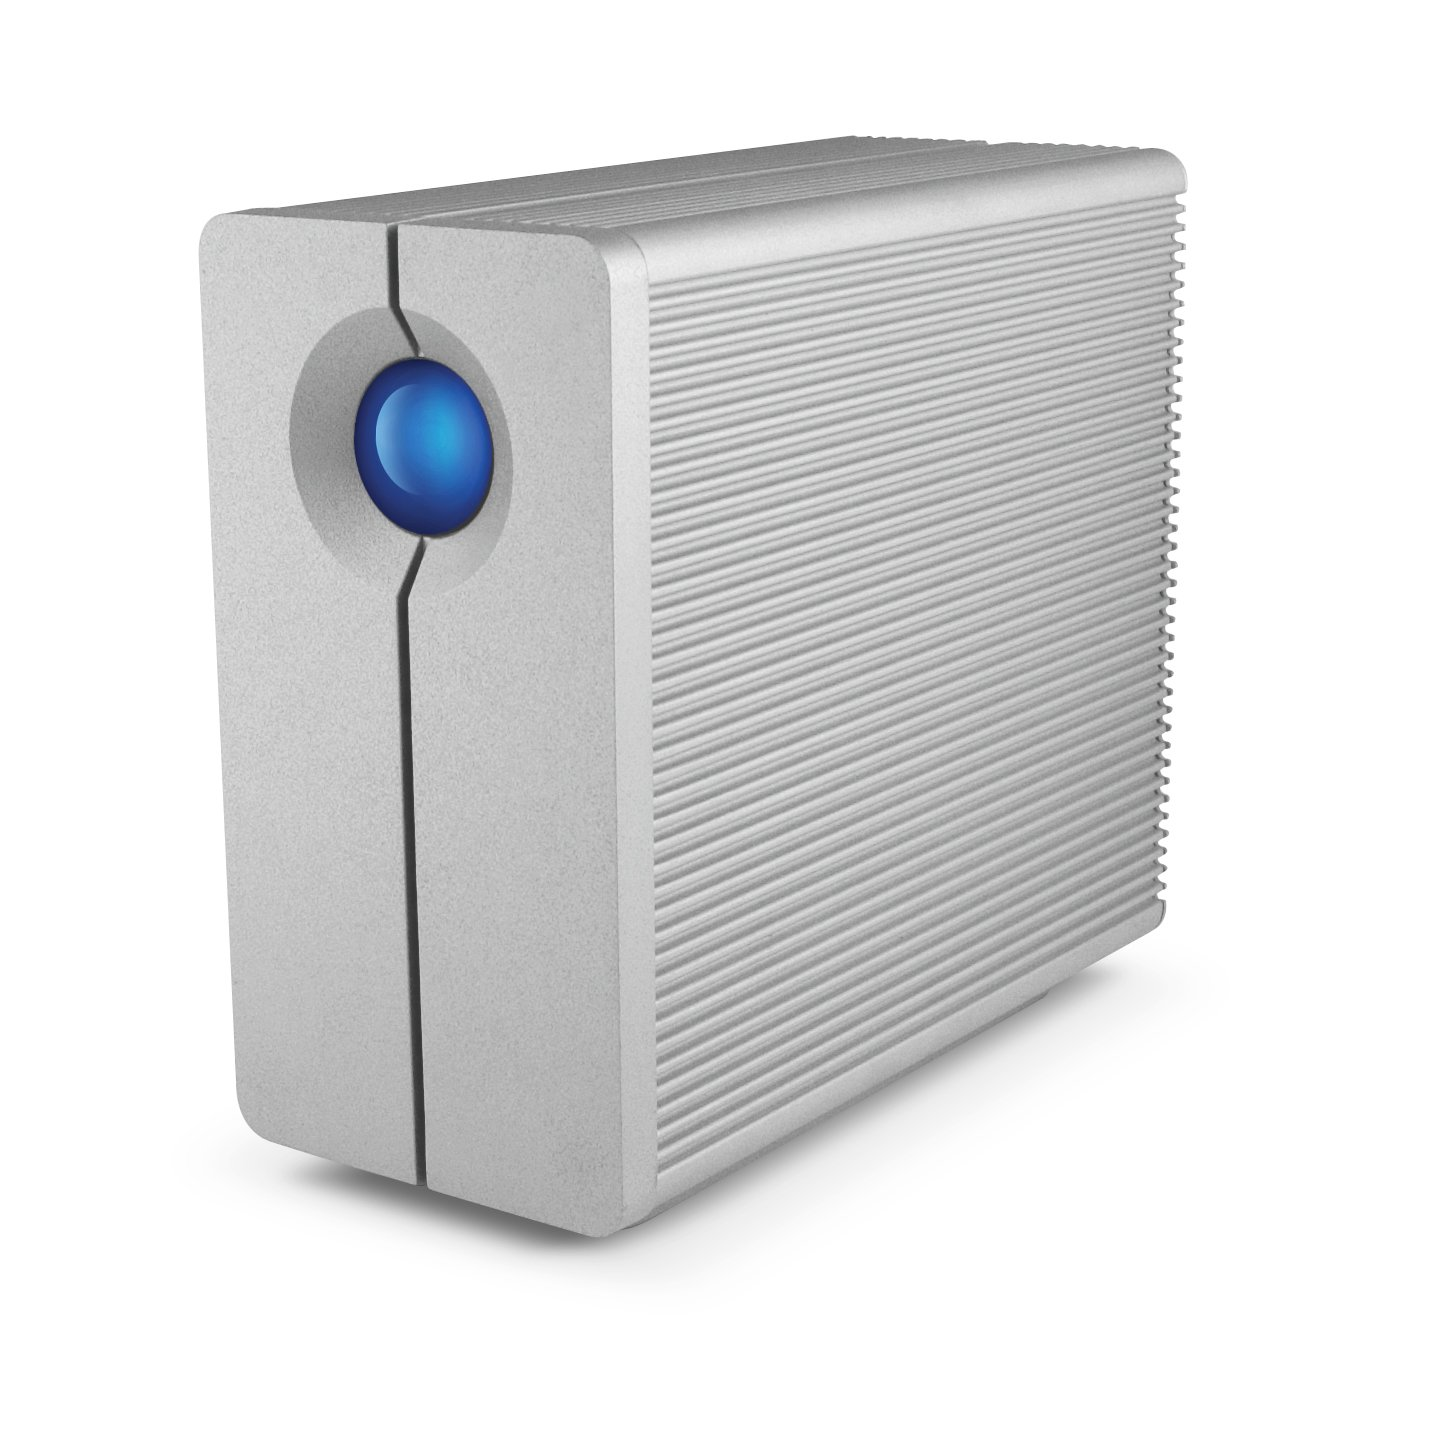 LaCie 2Big NAS (9000225) 4TB Network Attached..